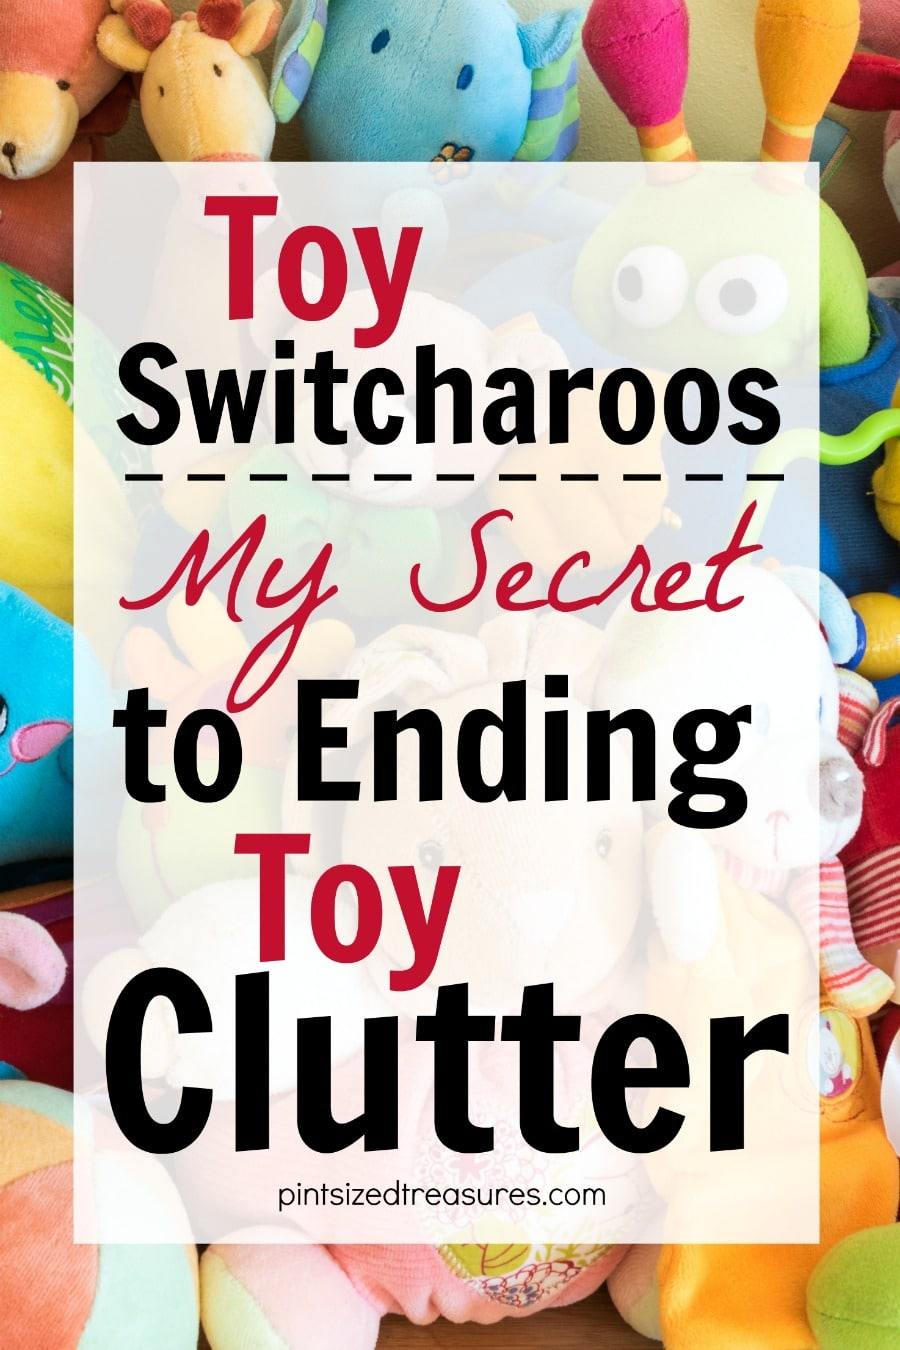 toy switcharoos ending toy  clutter